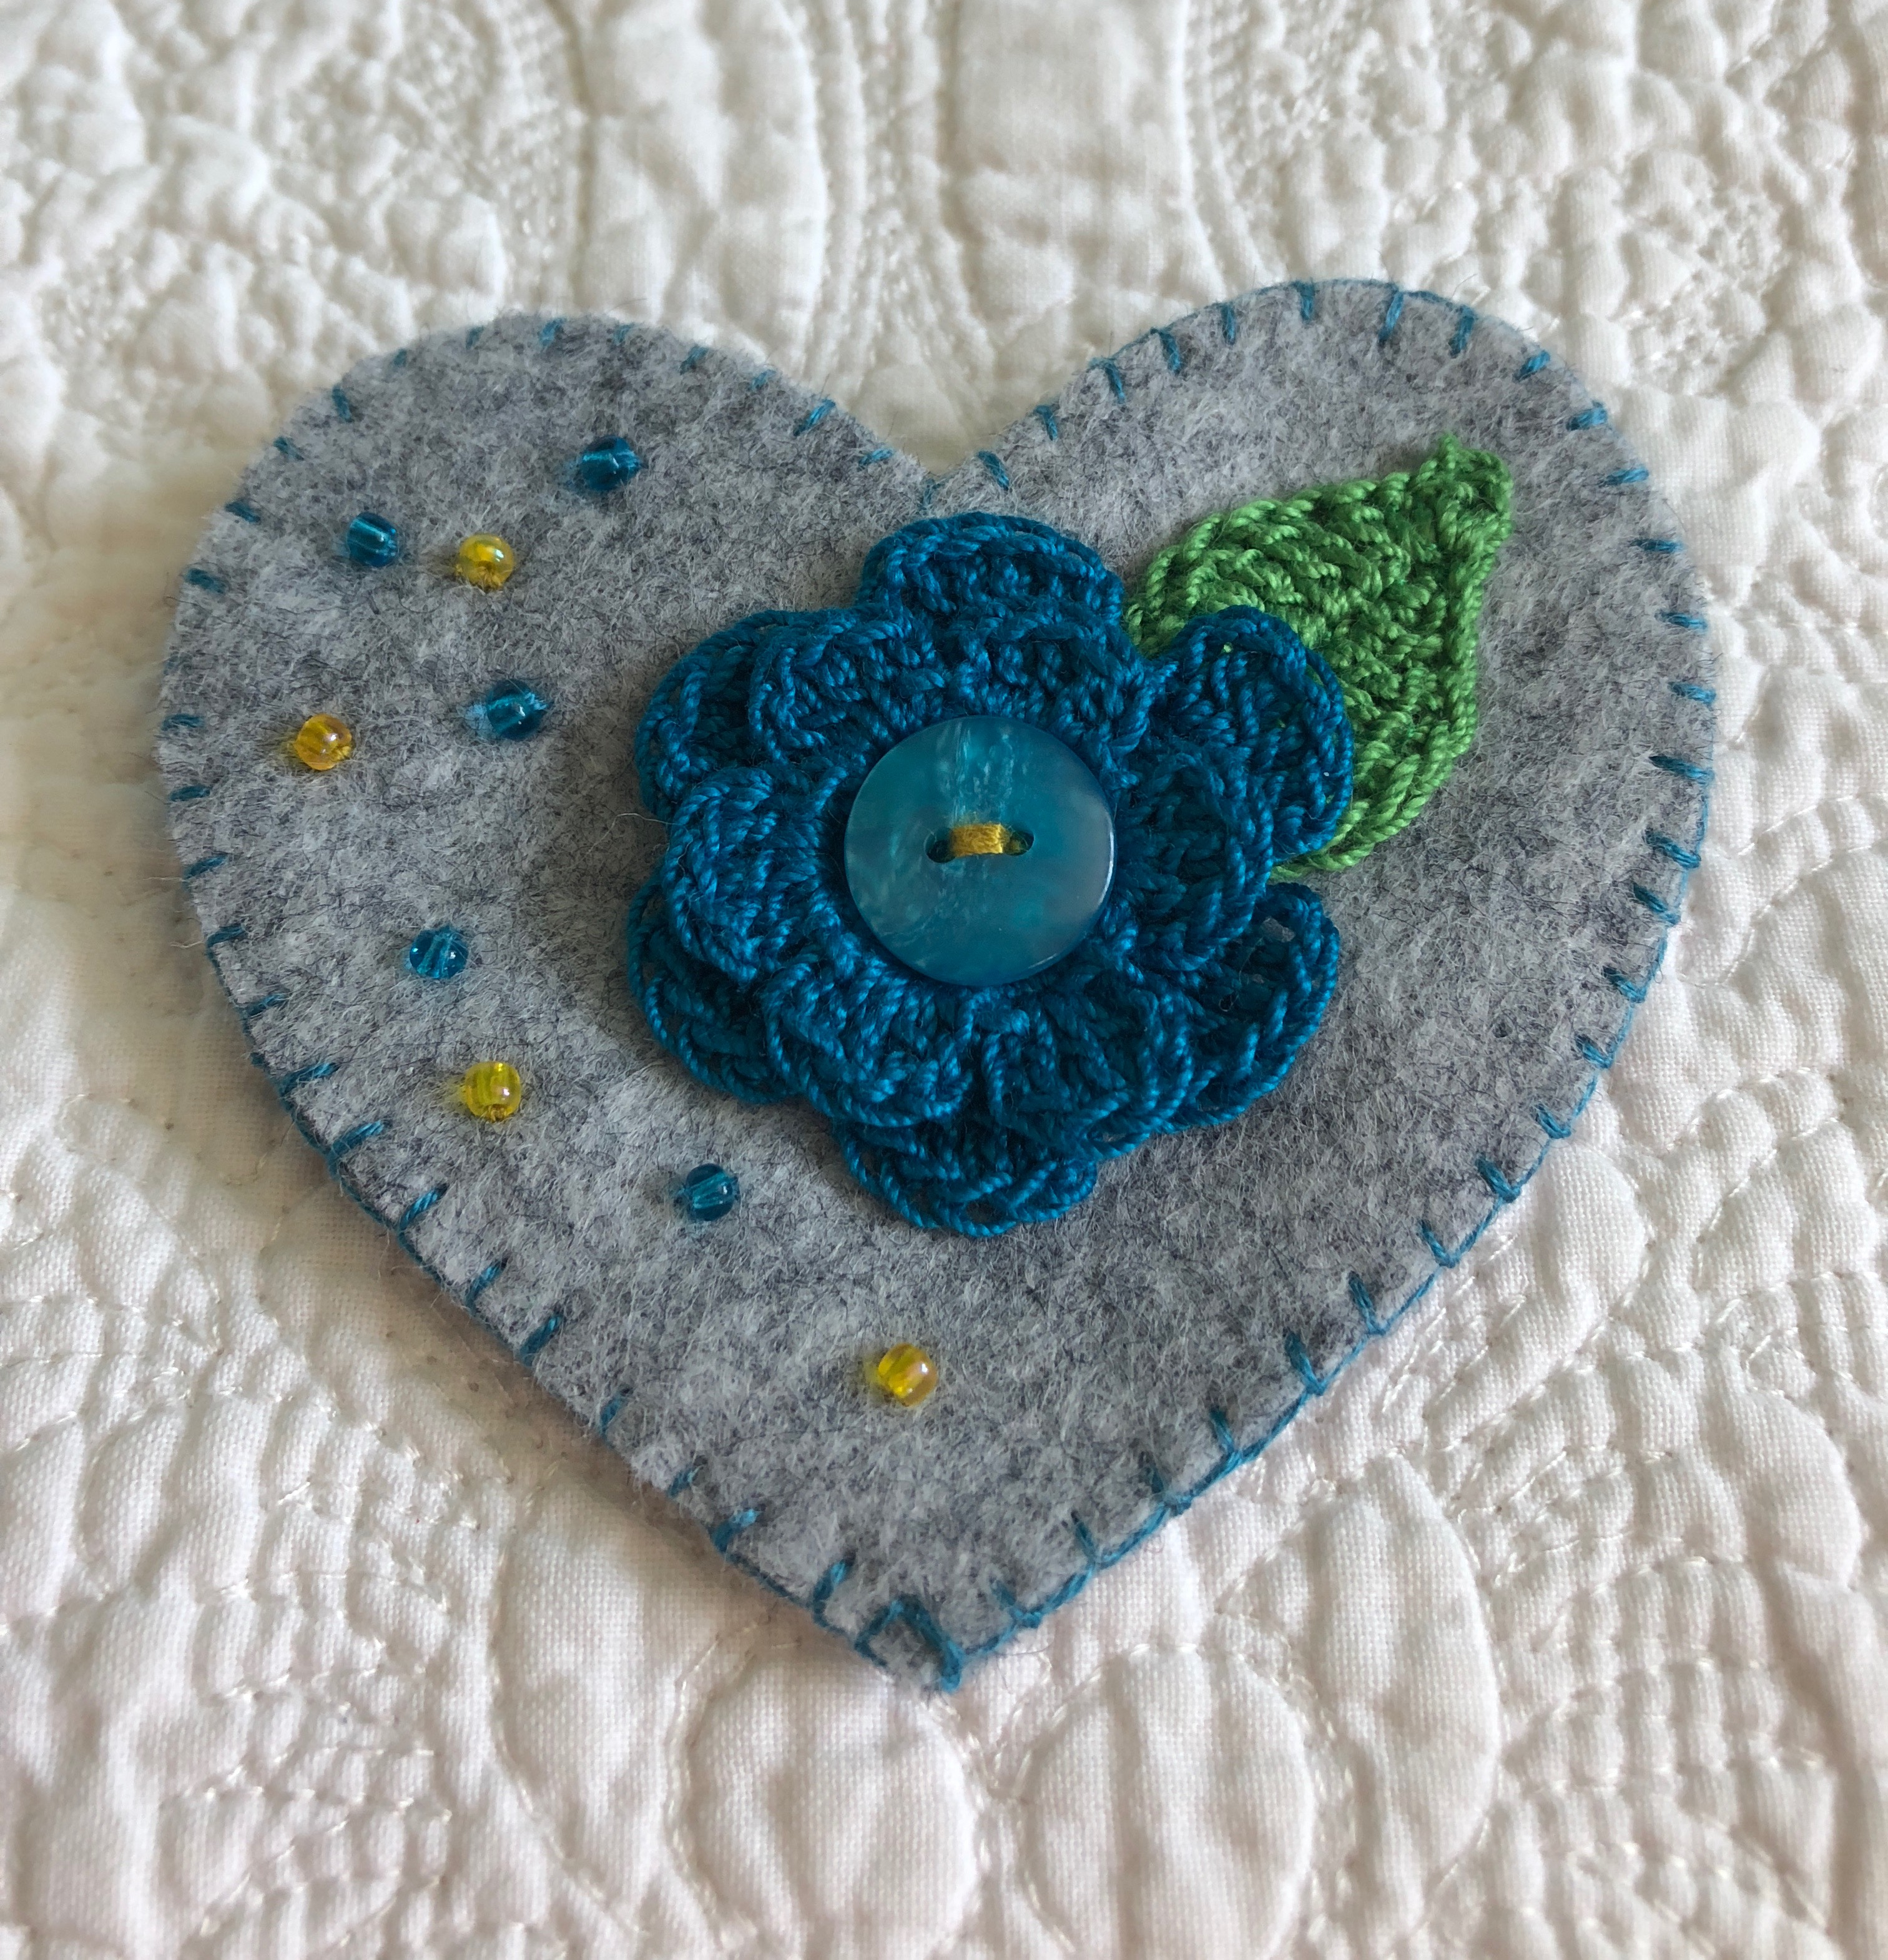 Handmade and hand stitched grey felt heart with a blue crocheted flower and green leaf embellished with a button and tiny glass beads.